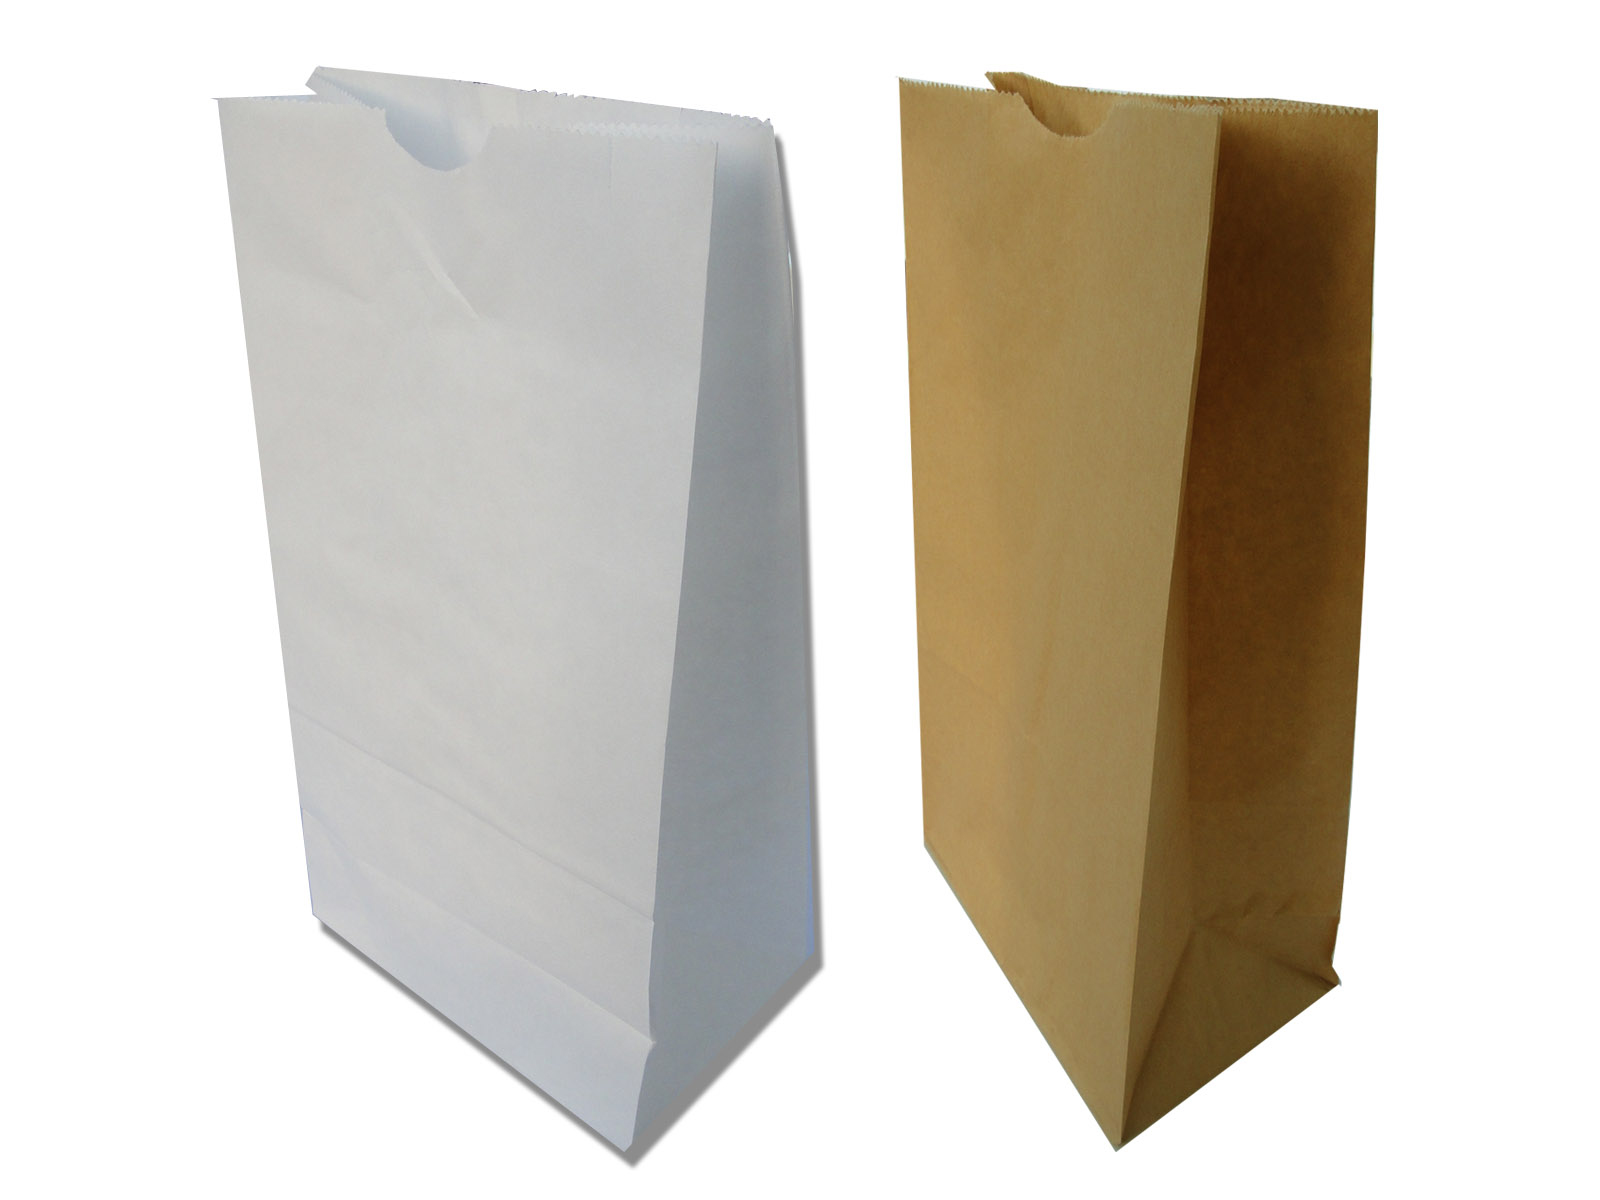 Image result for brown paper bags